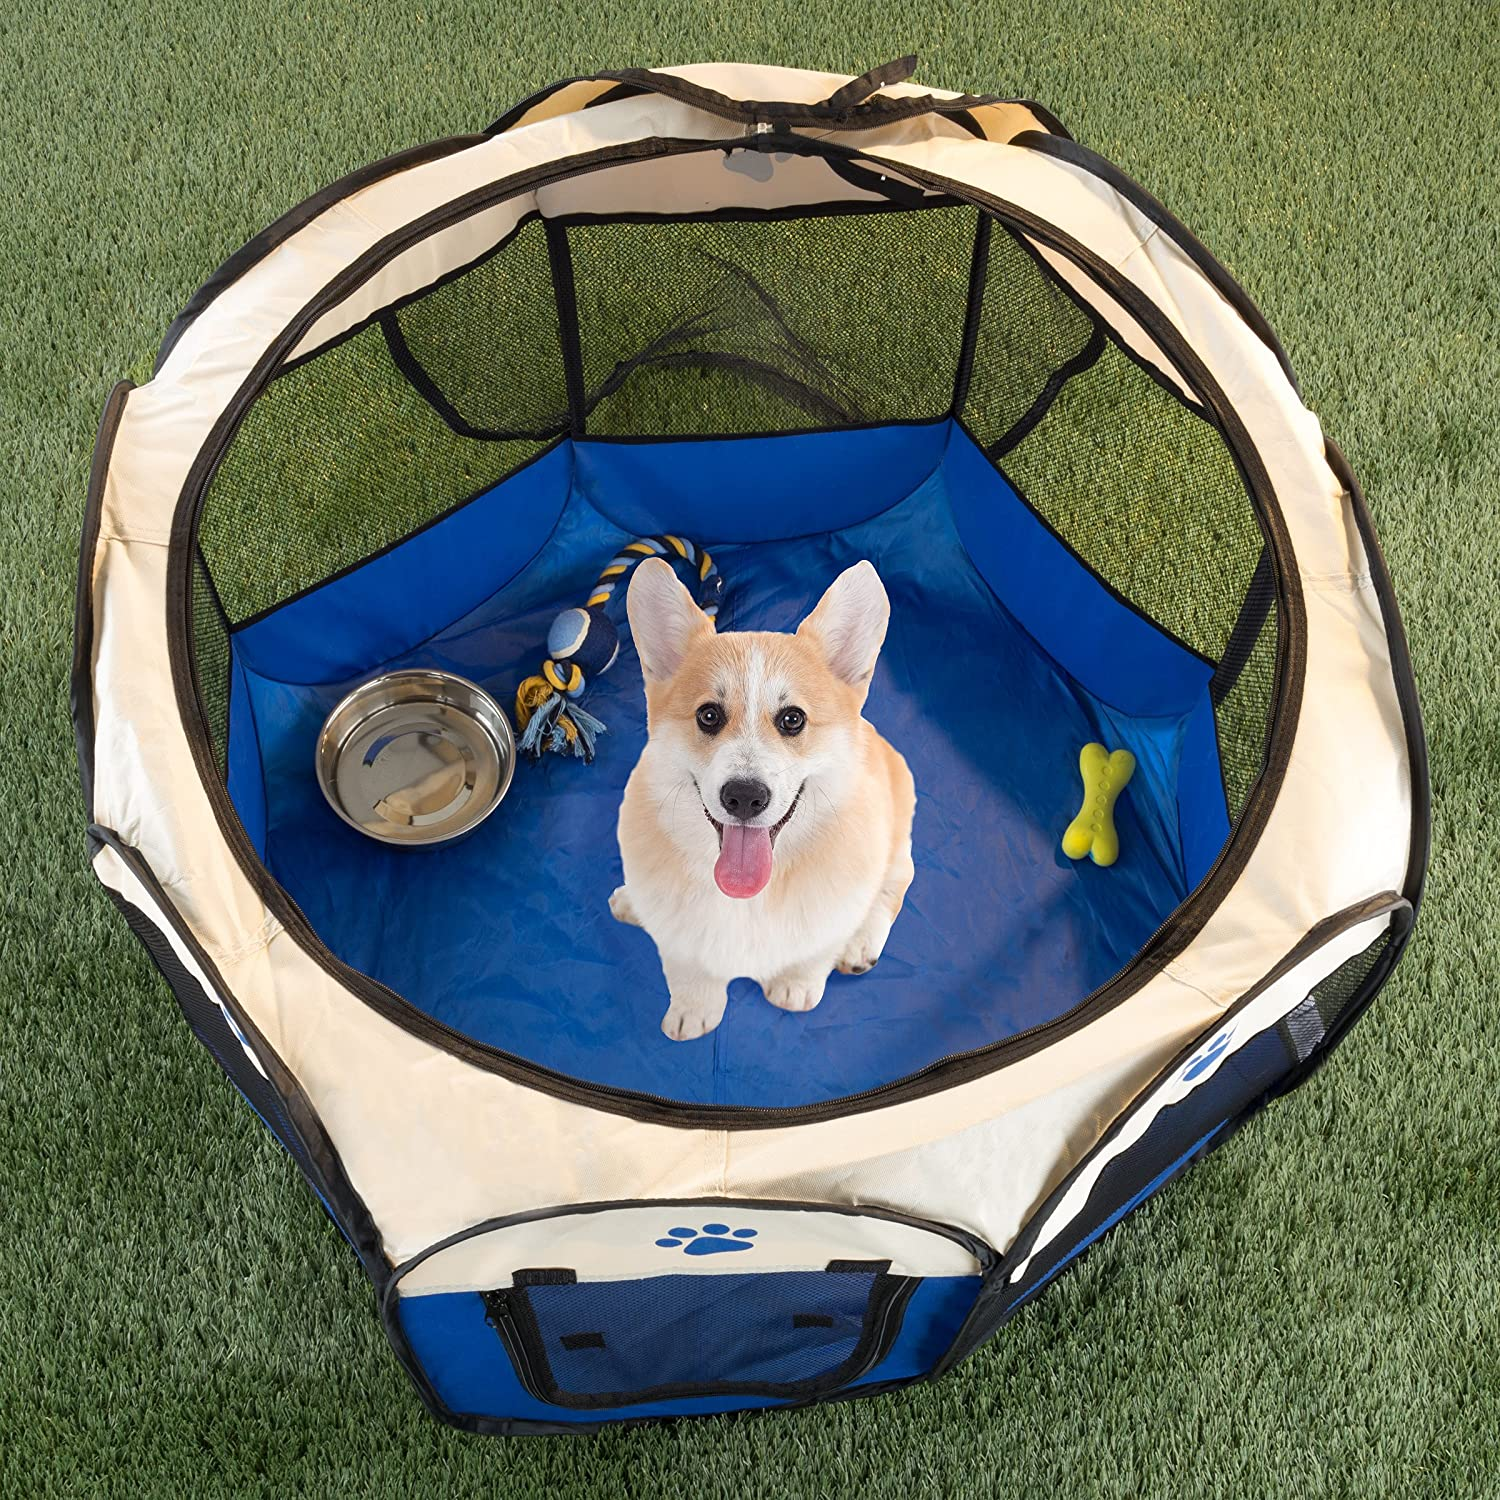 31.5x22 PETMAKER Pop-Up Pet Playpen with Carrying Case for Indoor Outdoor Use 31.5  x 22Portable Travel-Great for Dogs, Cats, Small Animals (bluee)